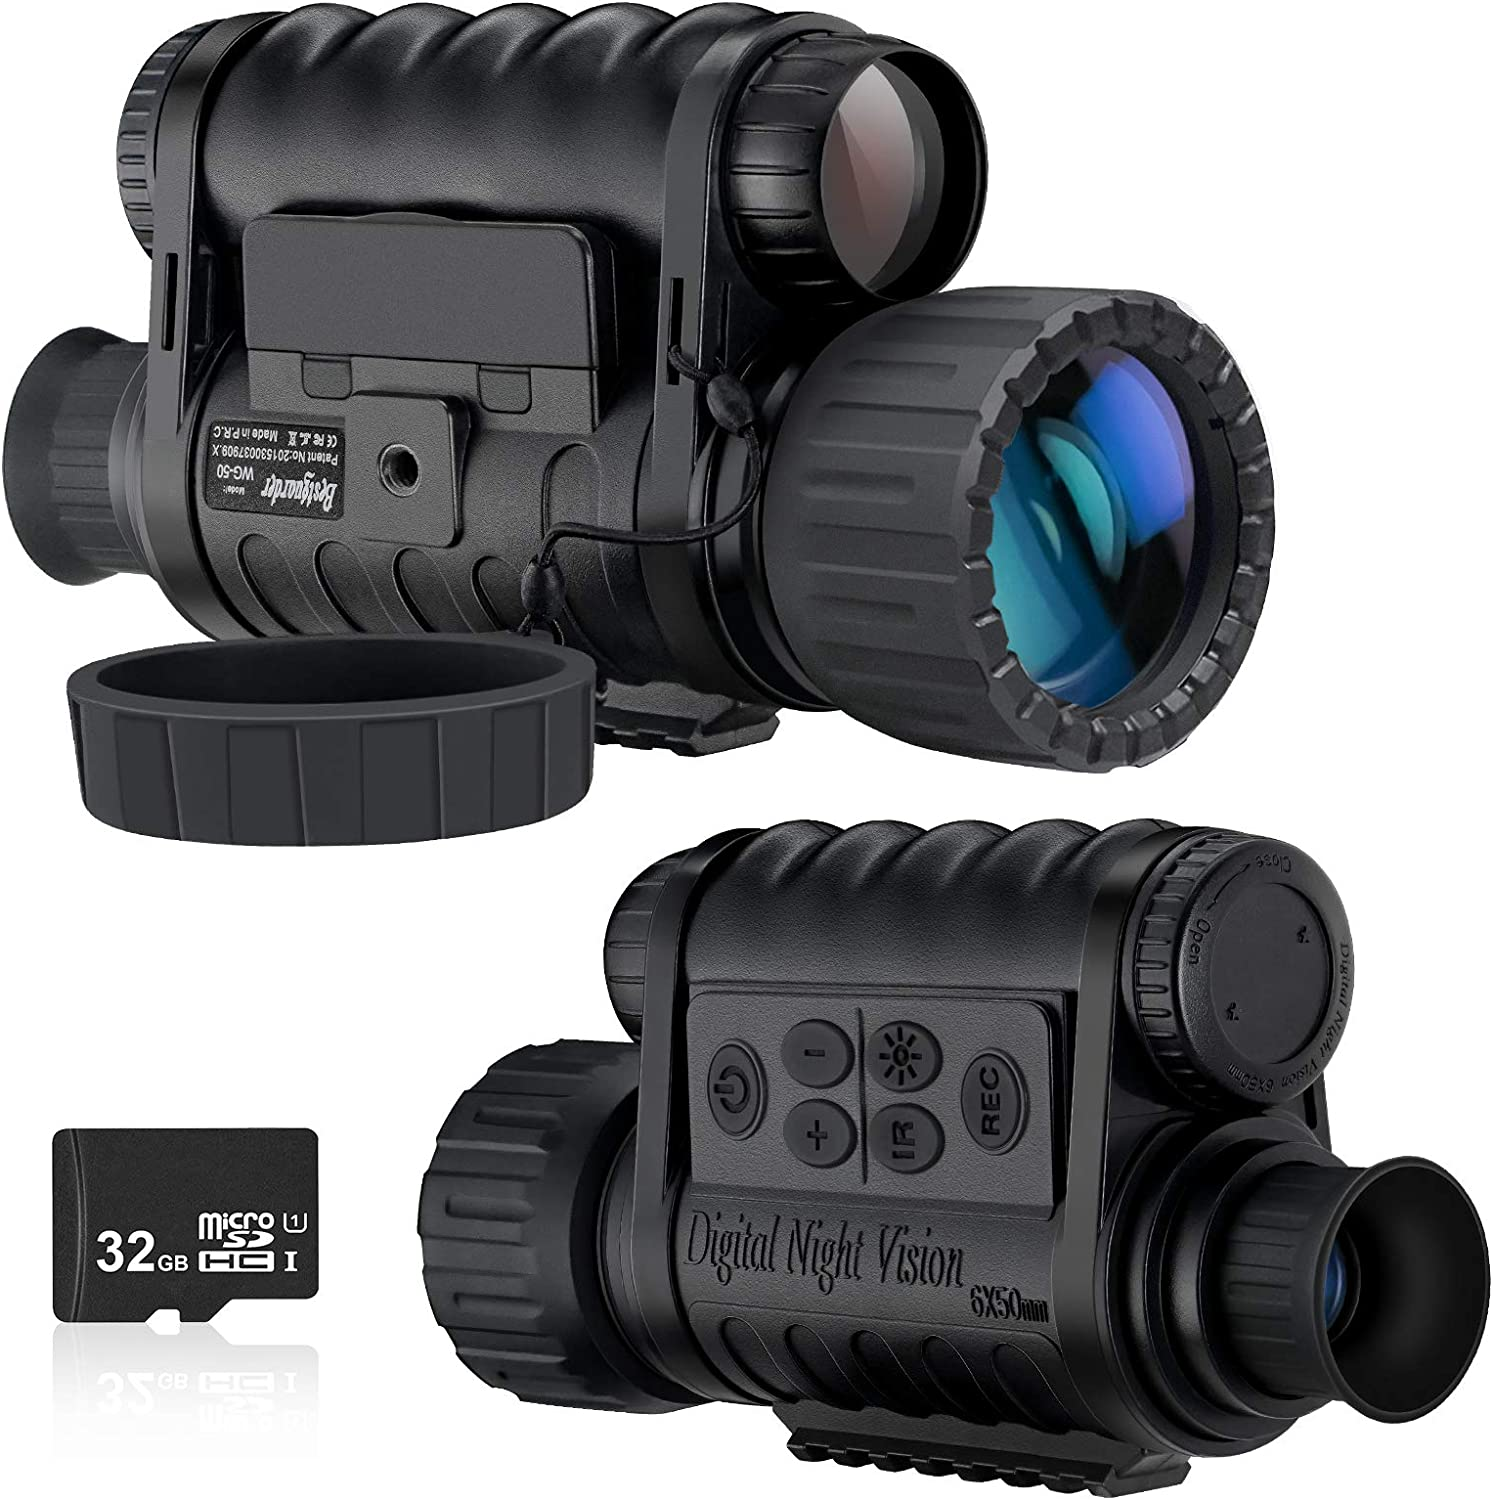 Infrared HD Night Vision Monocular Scope Video Record Hunting Optical Sight Cam